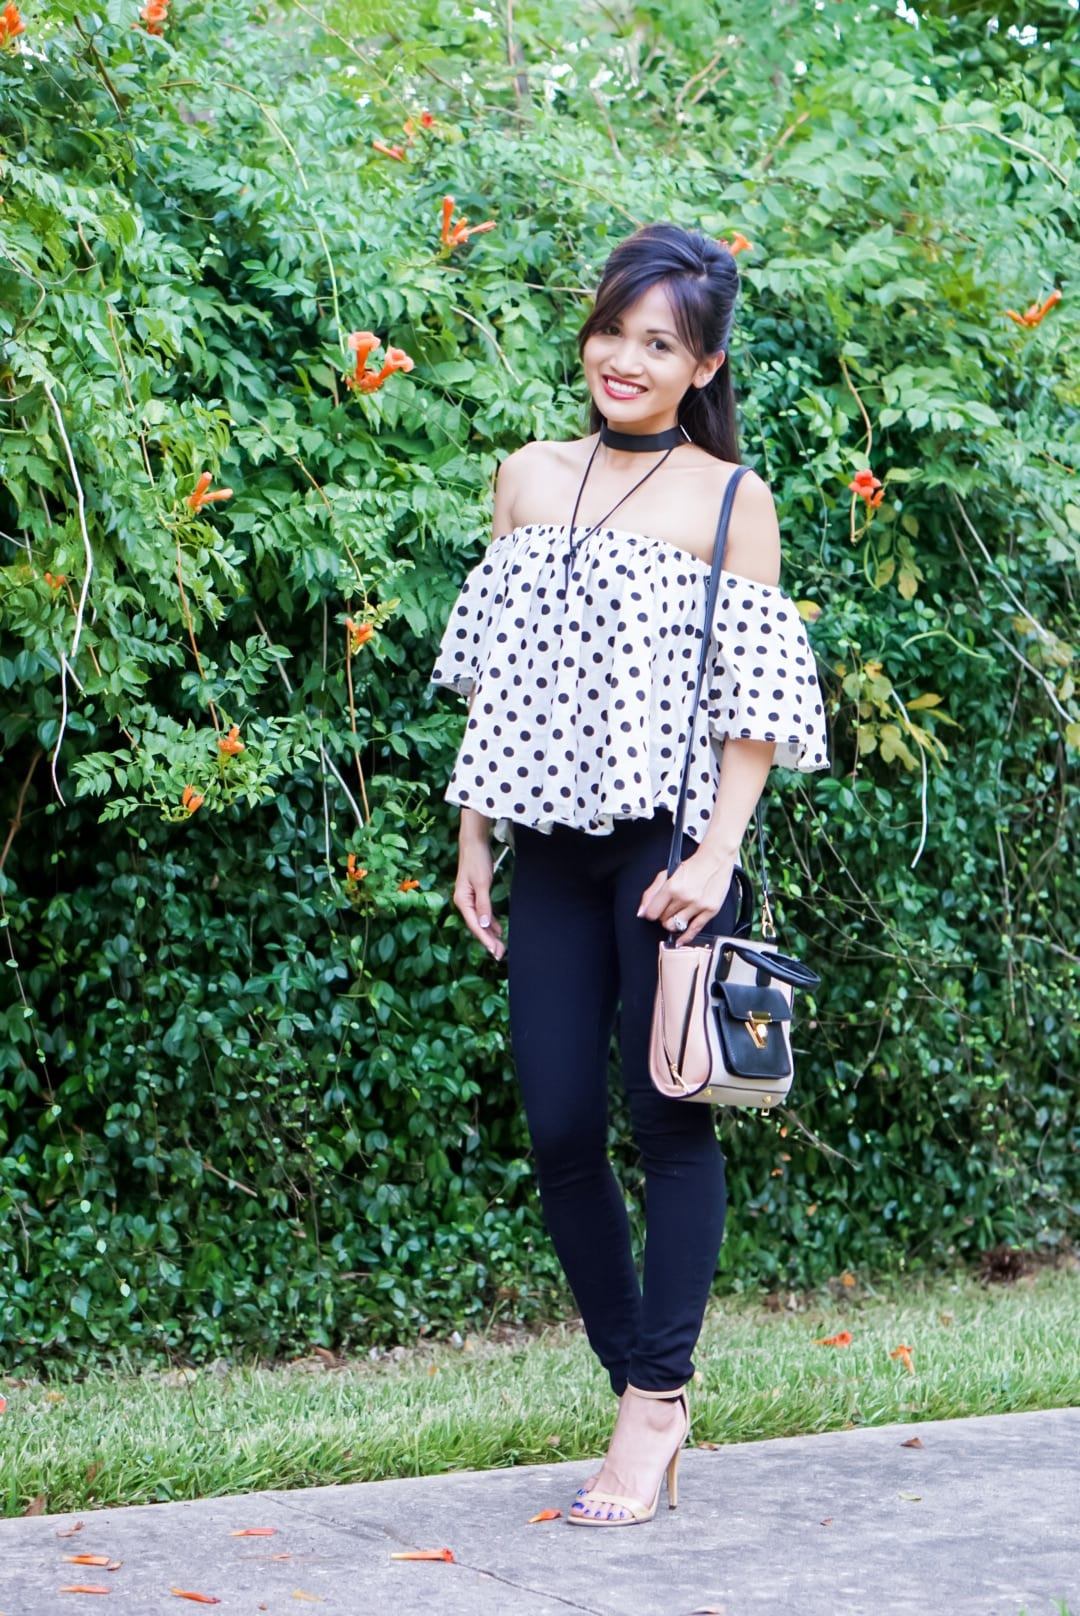 Blogging Photography Q&A, date night outfit, polka dots, off the shoulder tops.